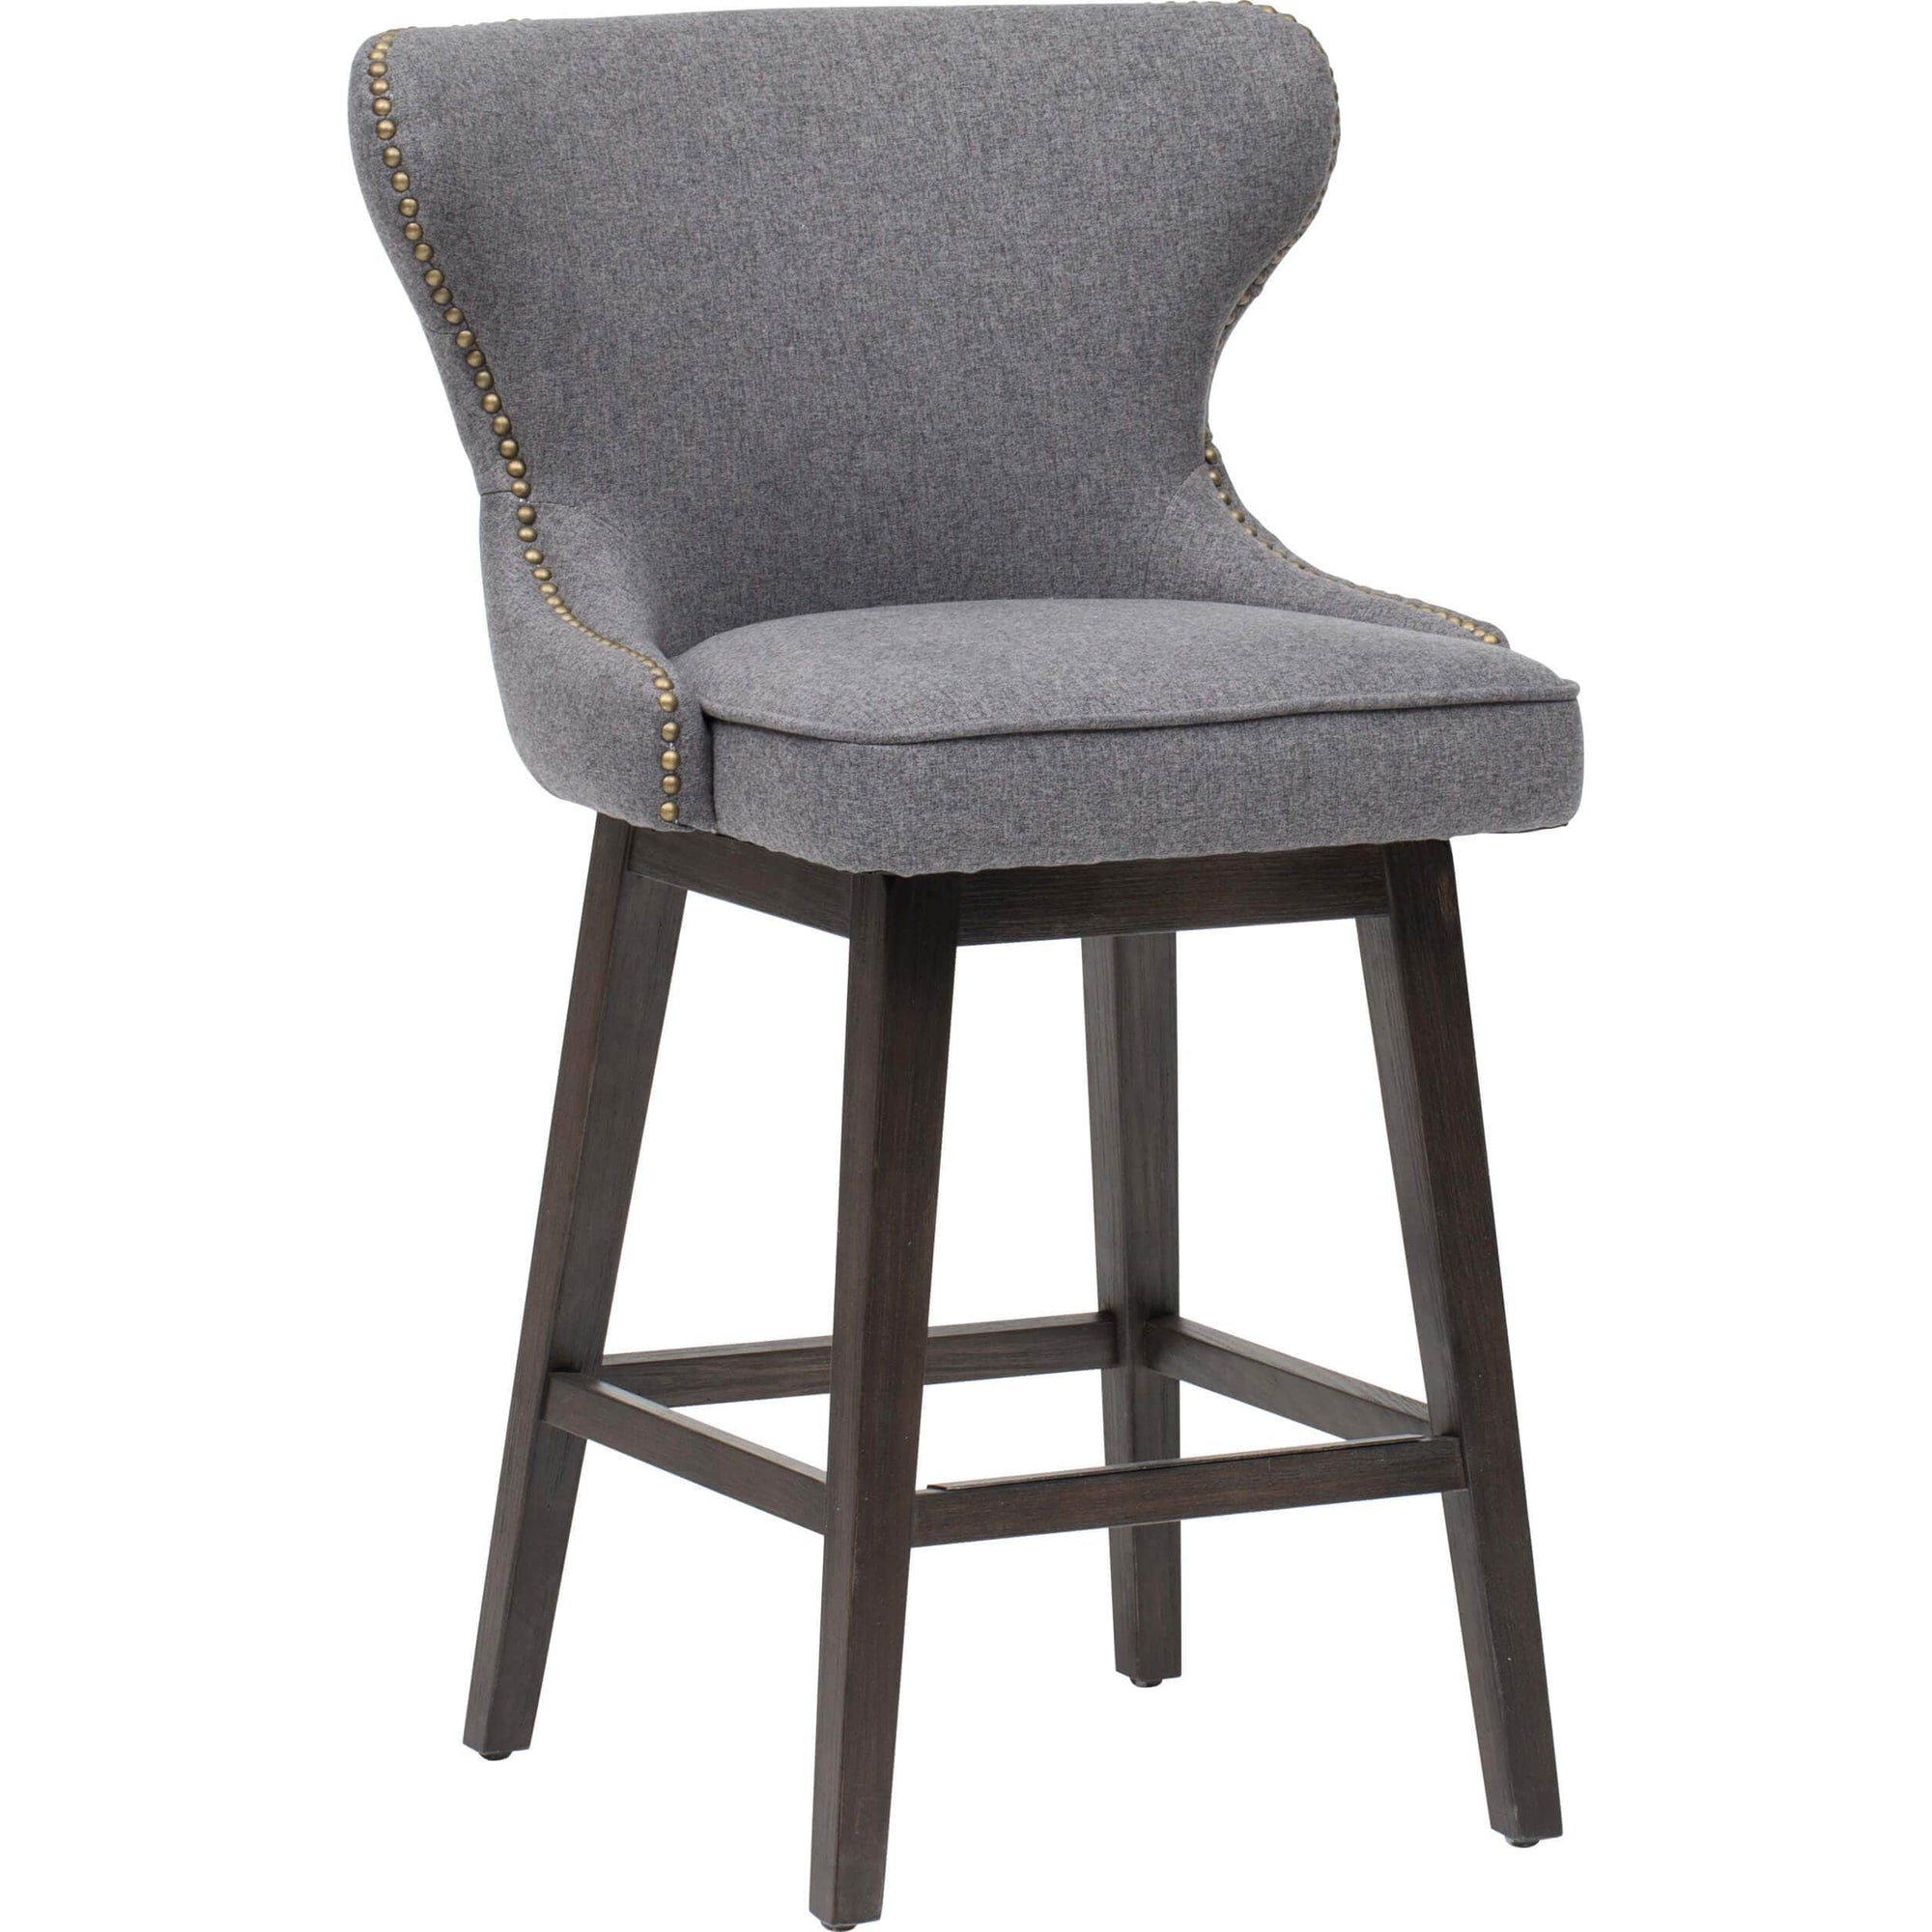 Marvelous Ariana Swivel Counter Stool Dark Grey High Fashion Home Pdpeps Interior Chair Design Pdpepsorg